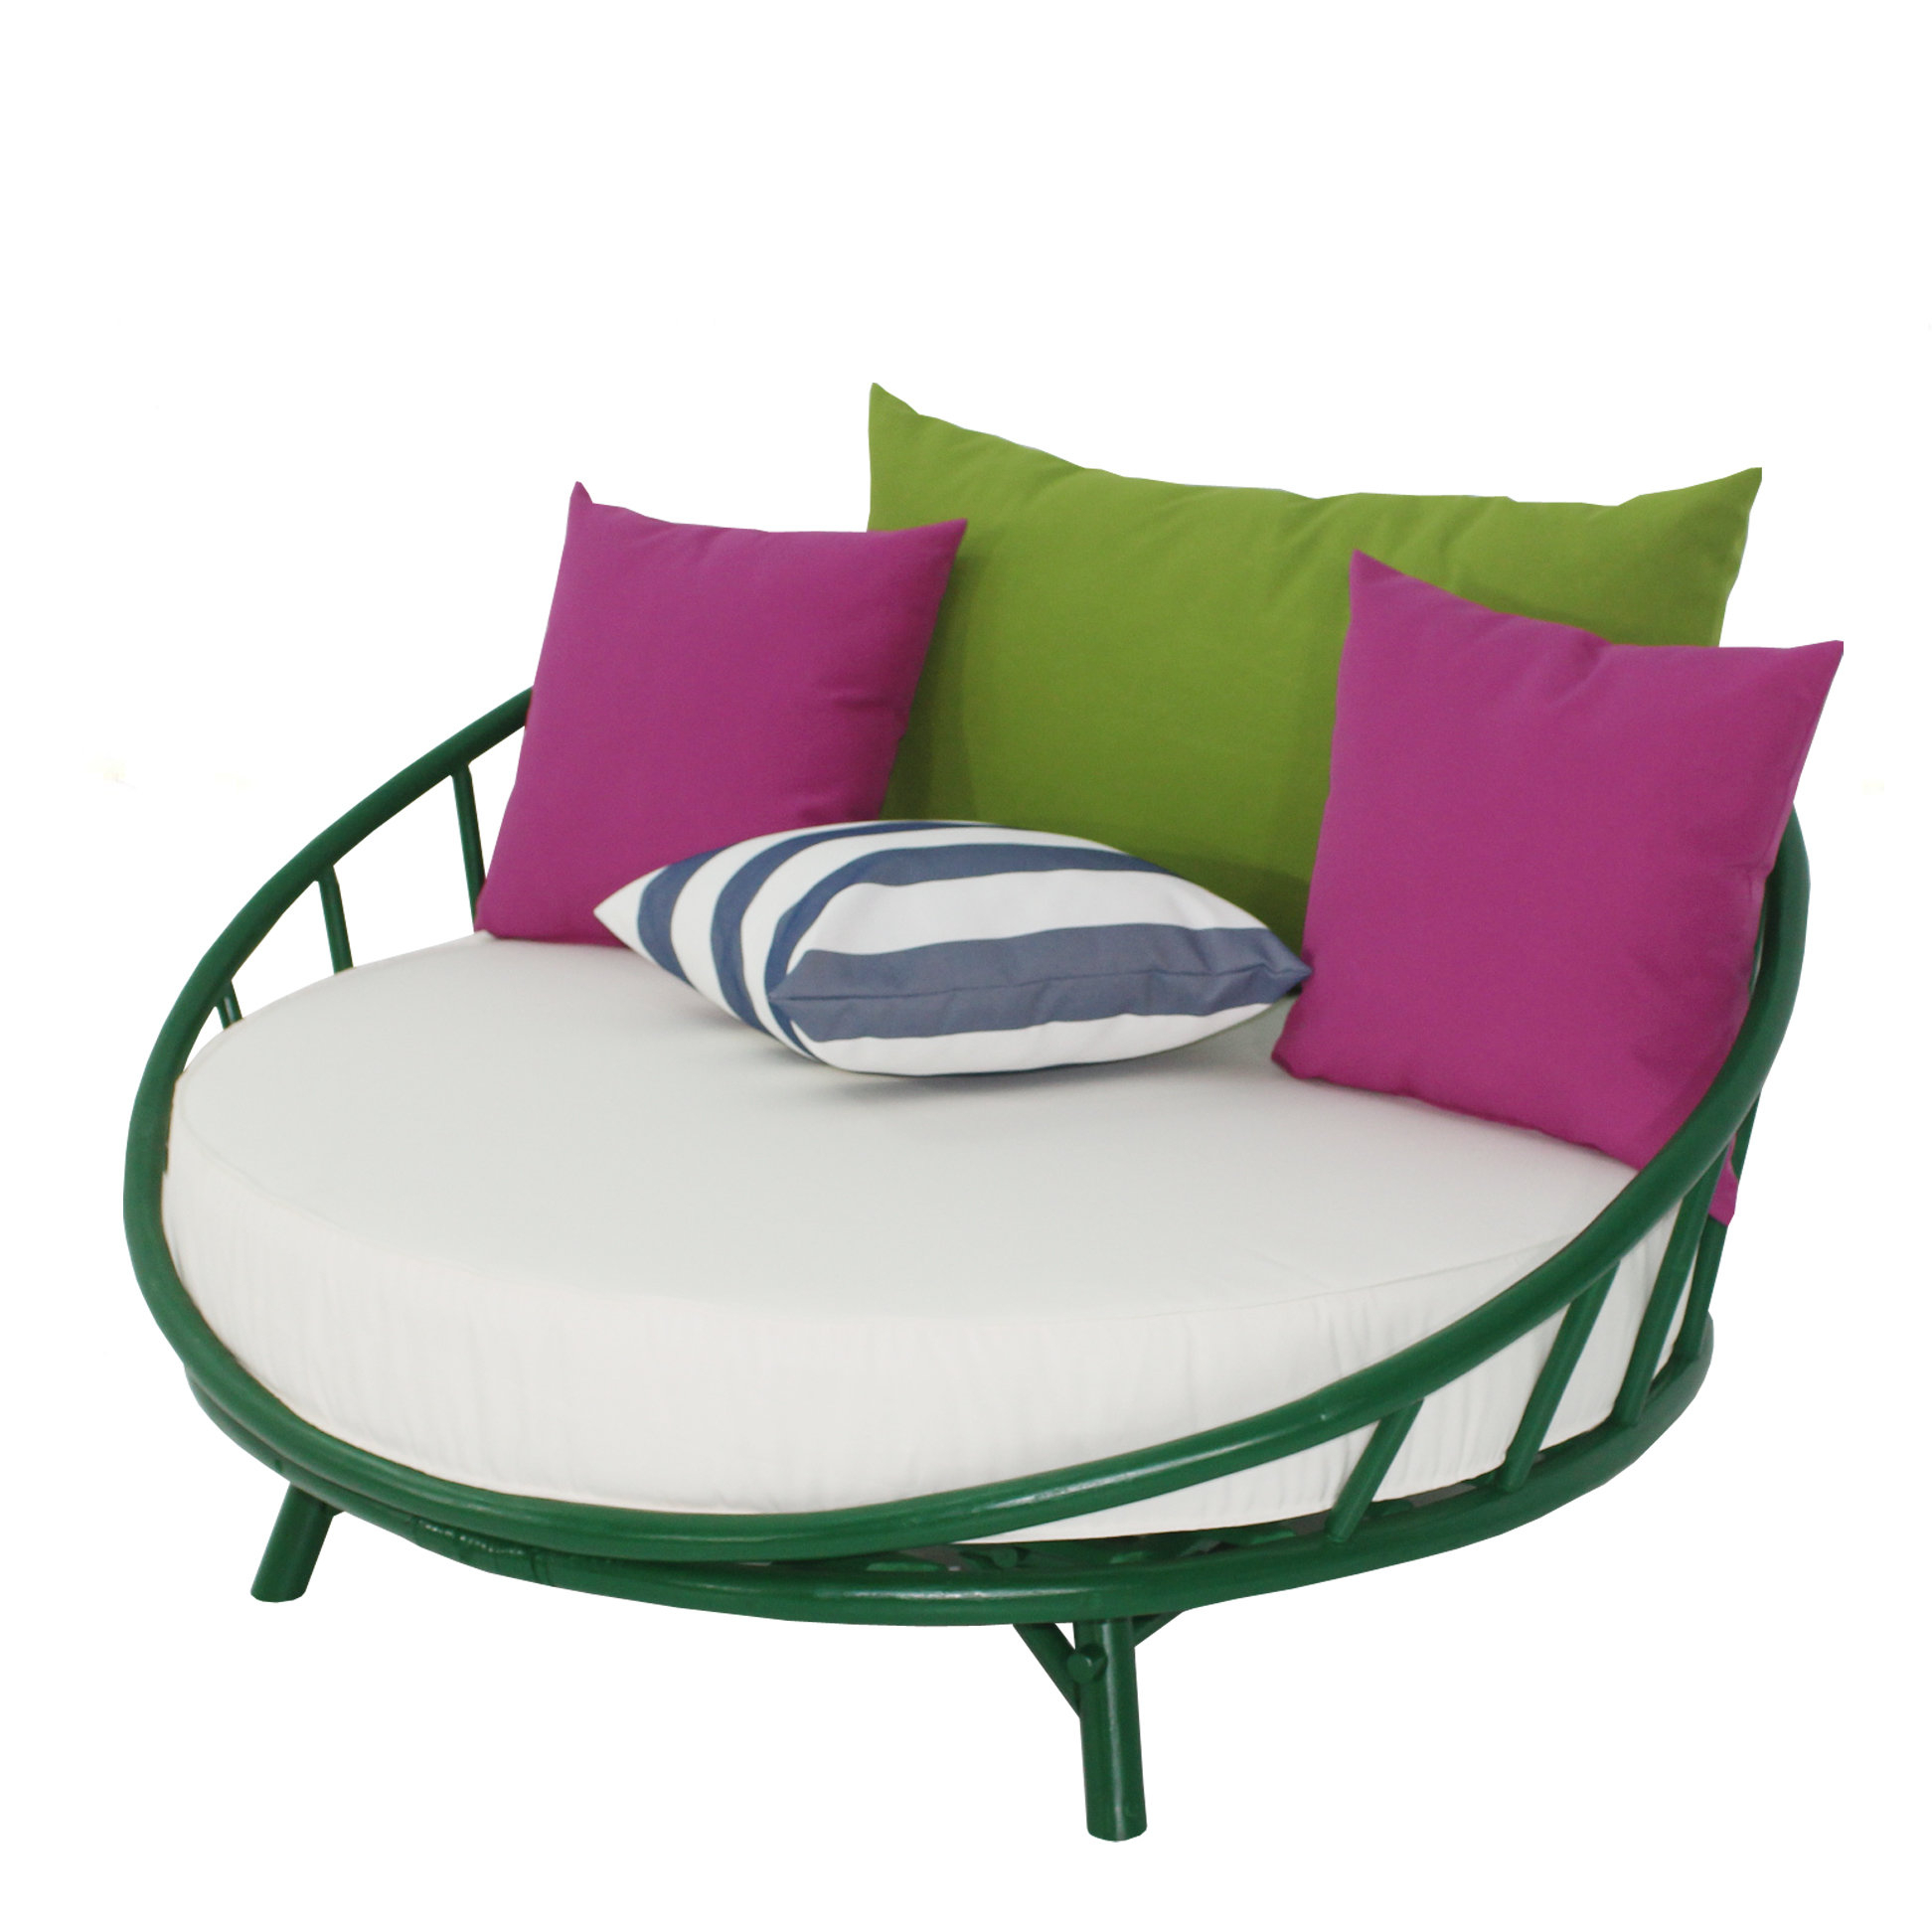 Falmouth Patio Daybeds With Cushions With Regard To Most Recently Released Olu Bamboo Large Round Patio Daybed With Cushions (View 7 of 20)